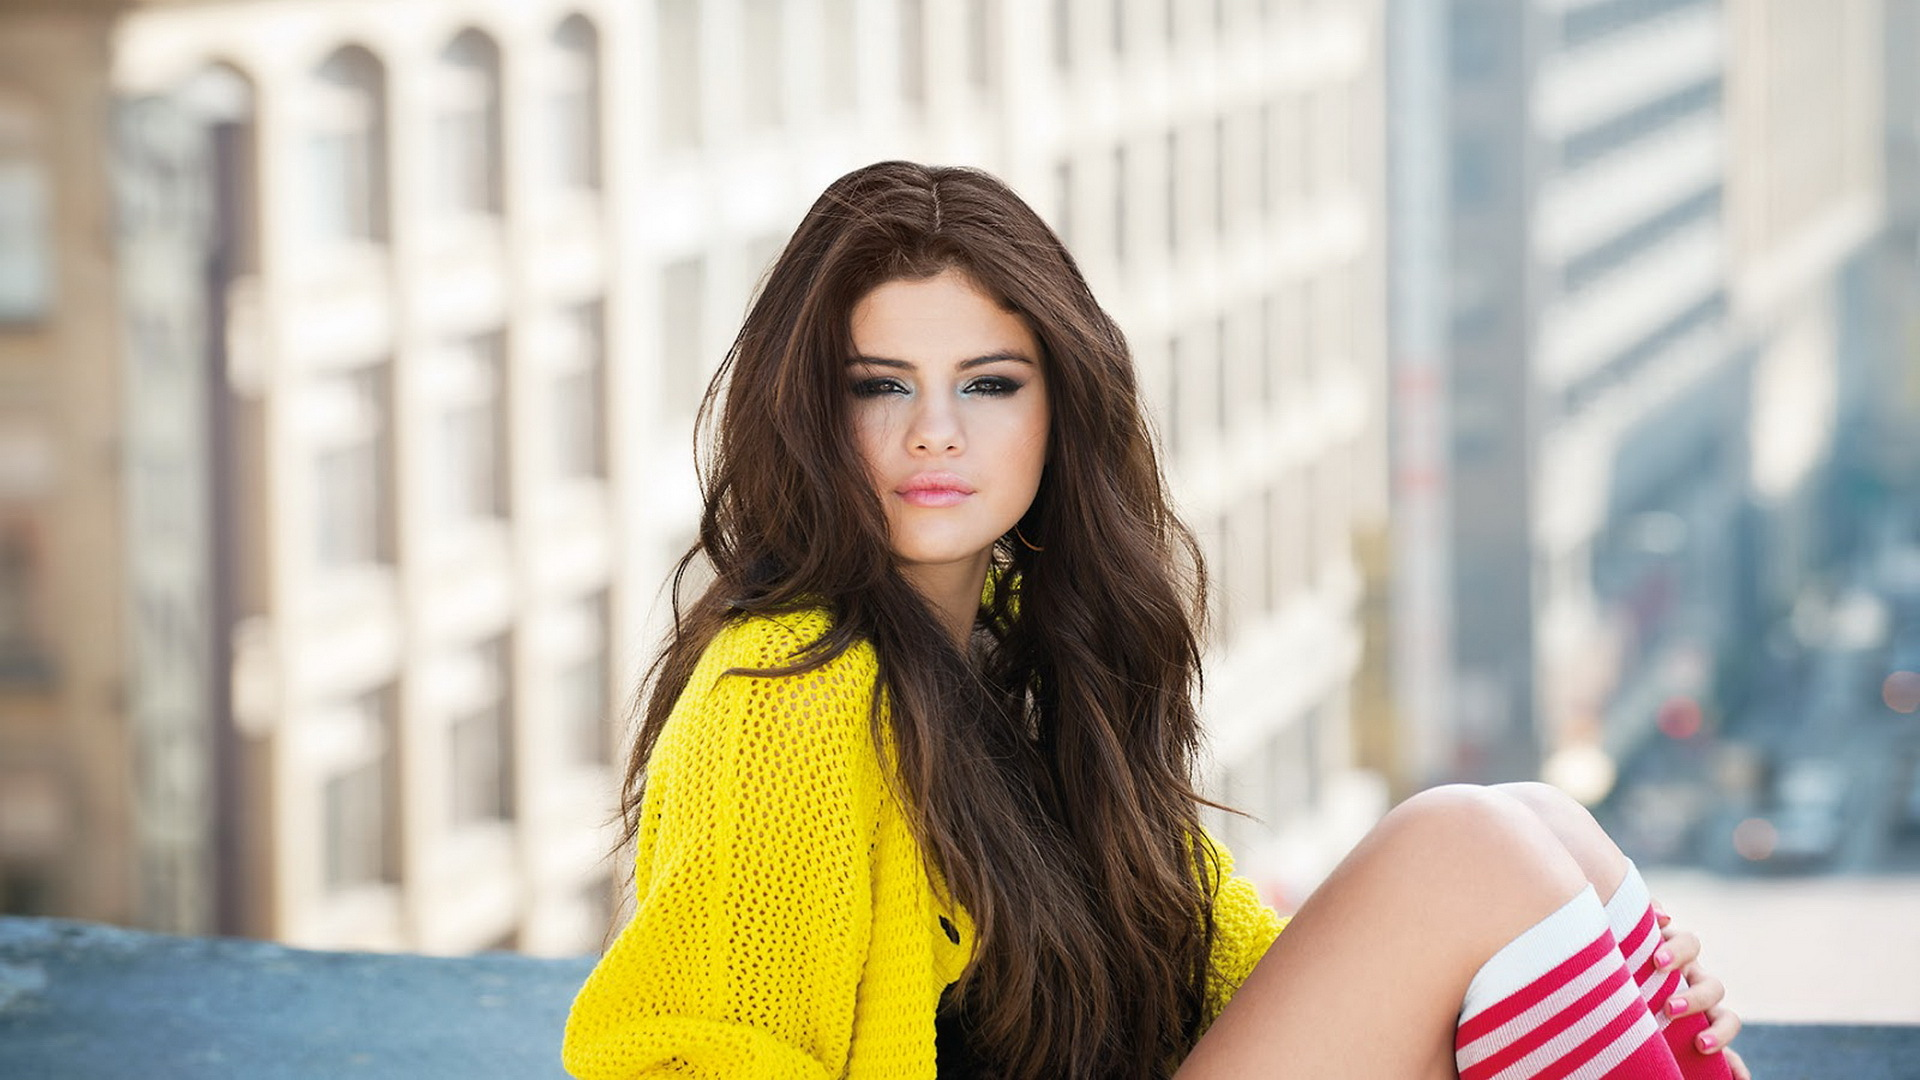 Selena Gomez Is Set To Take The Pop World By Storm With Her Third